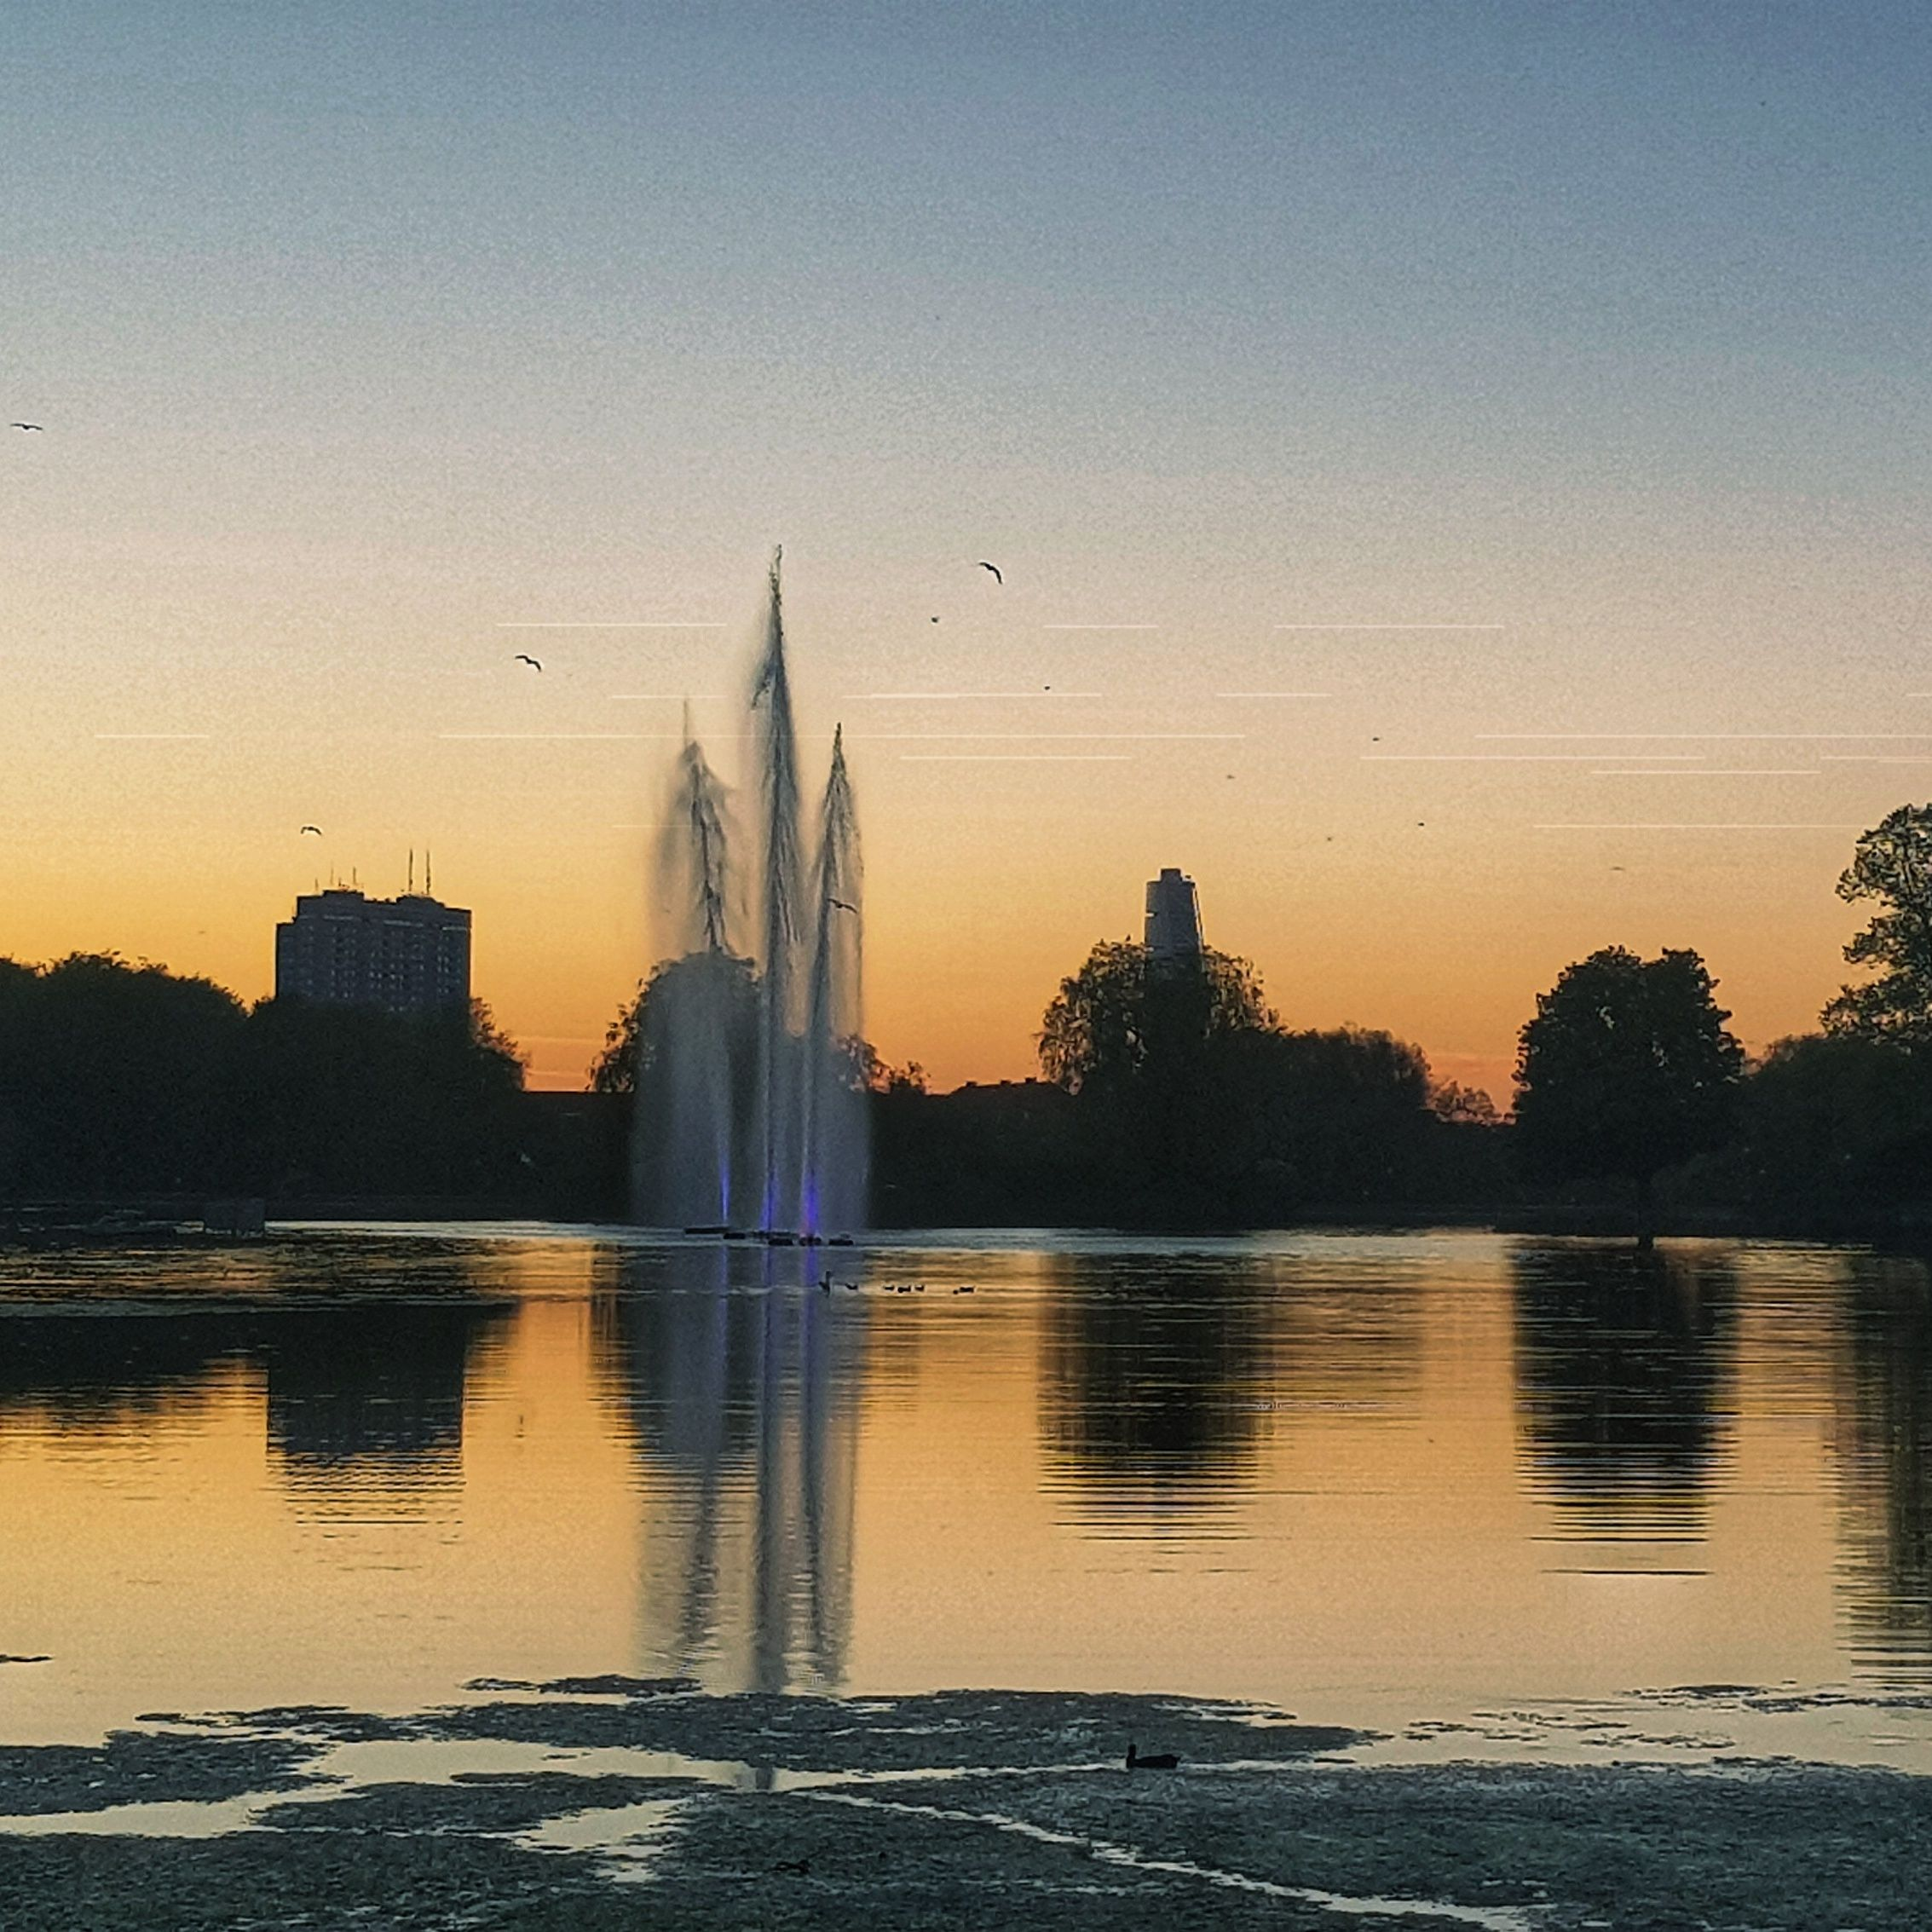 Day 134 - May 14: Sunset in the Park